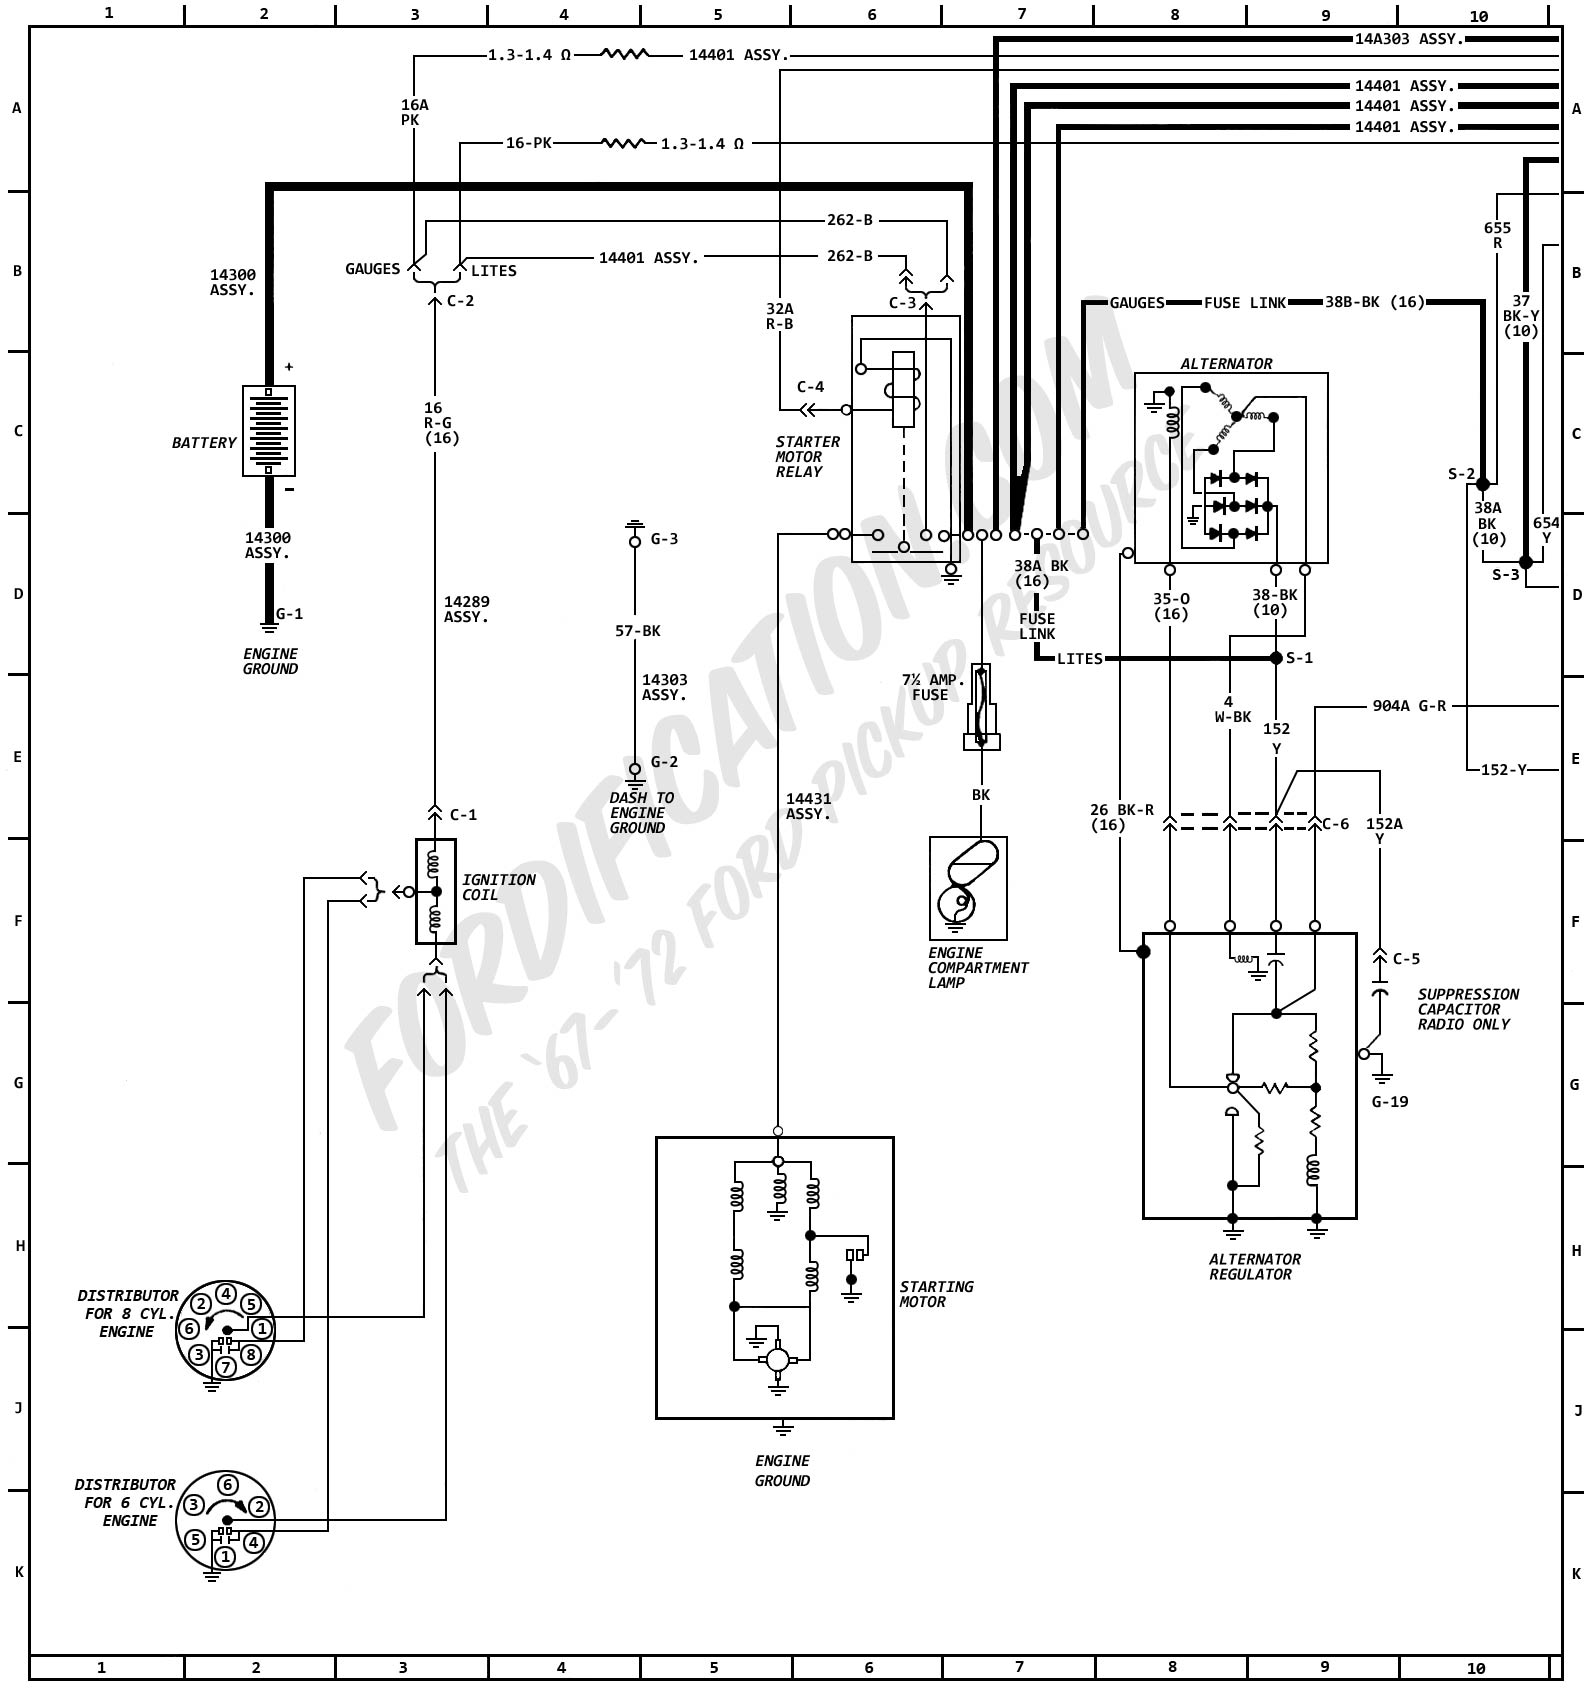 hight resolution of 1974 ford ltd alternator wiring manual e book 1974 ford ltd alternator wiring